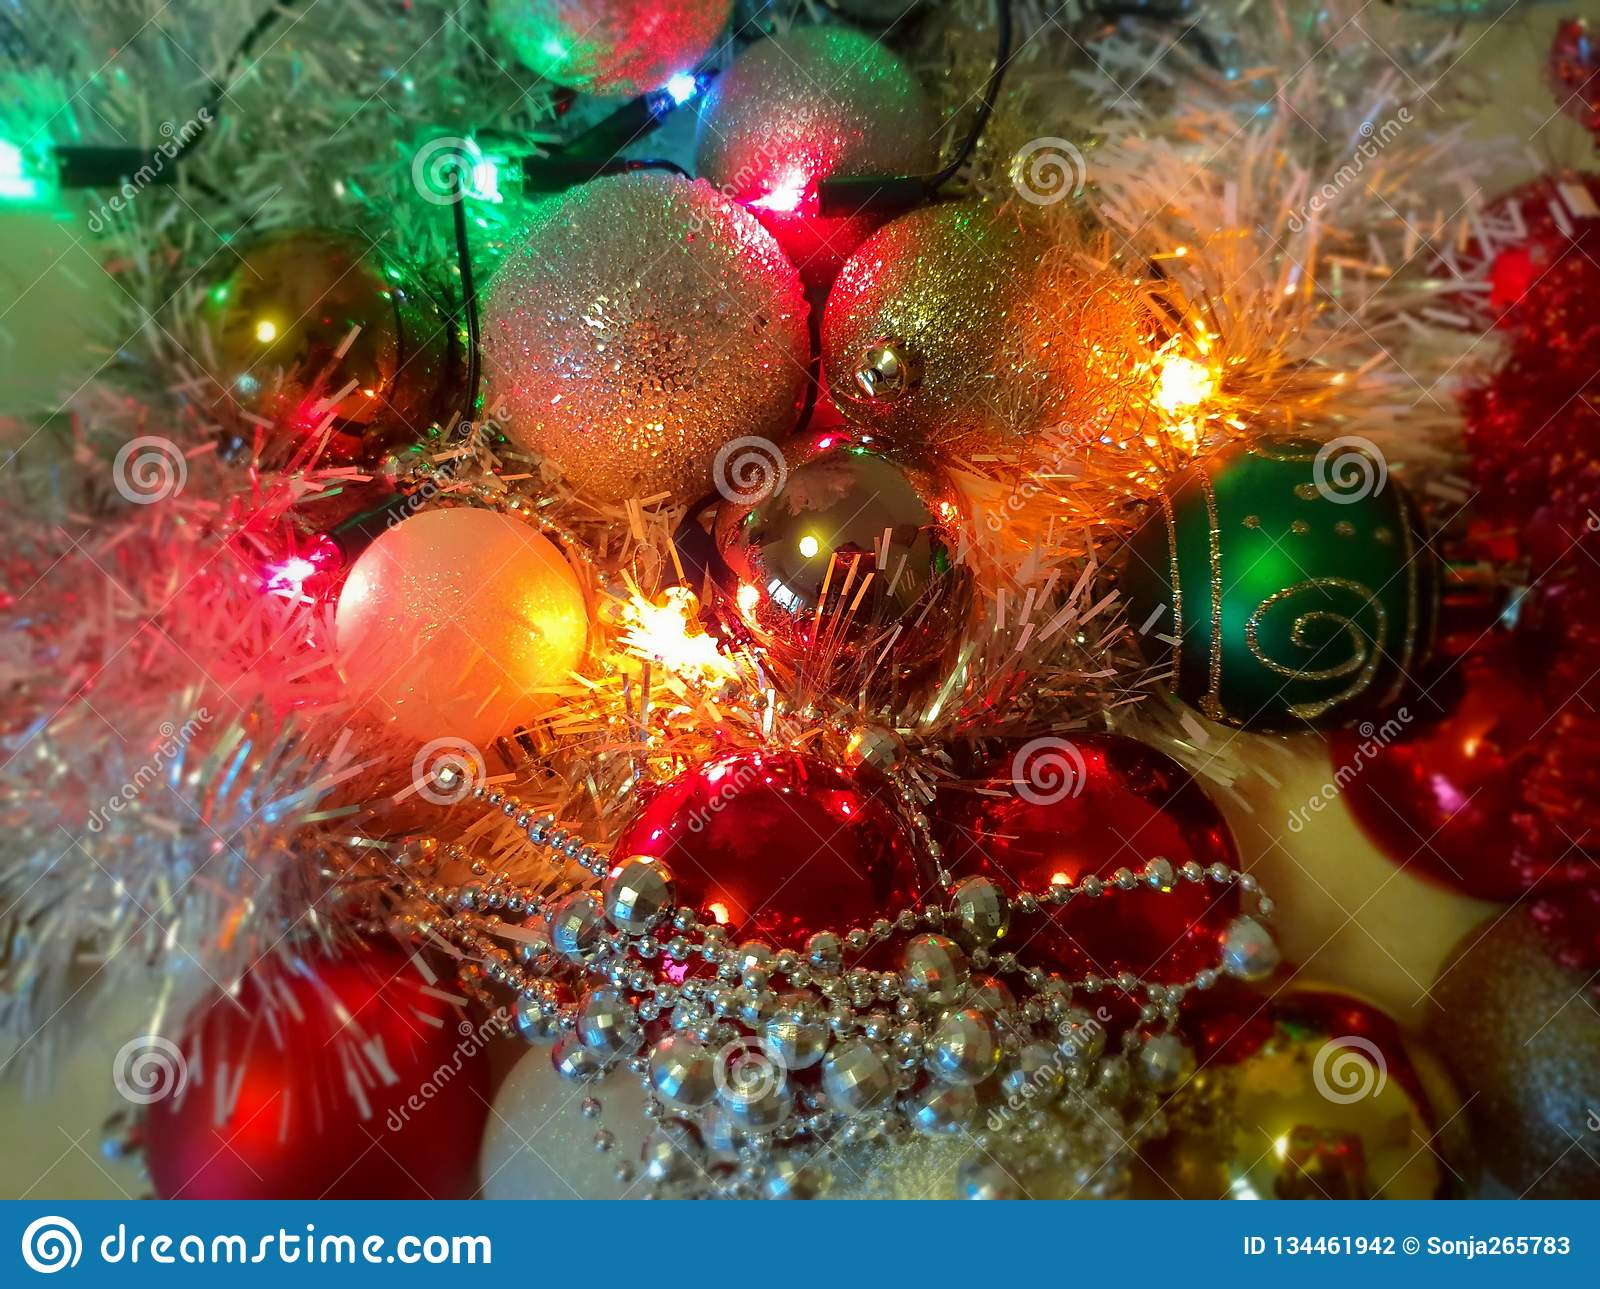 Red And Silver Christmas Decorations Ideas.Colorful Christmas Decoration Ideas White Balls Silver